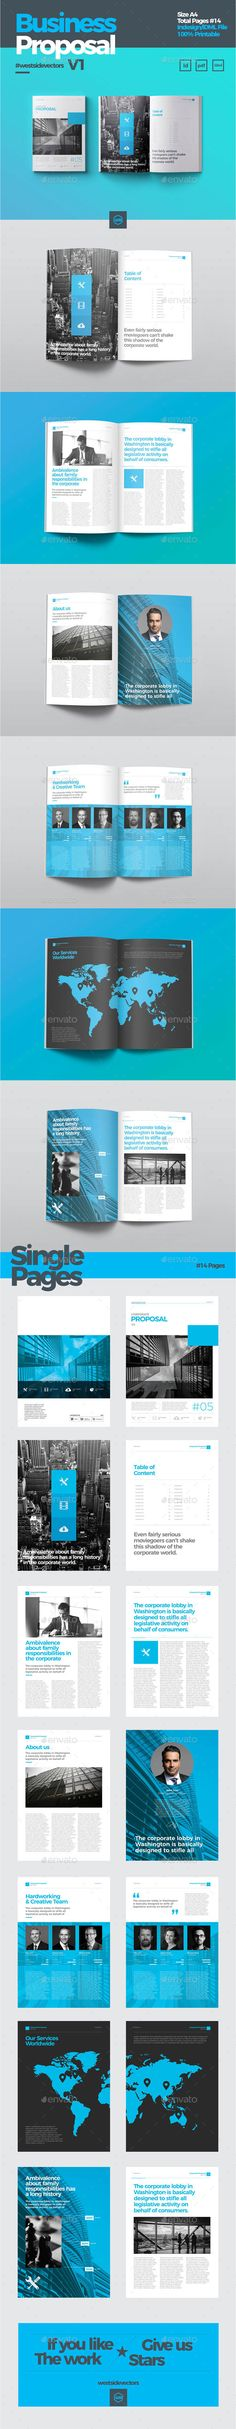 Business Proposal Indesign Template Business proposal, Indesign - event proposal templates